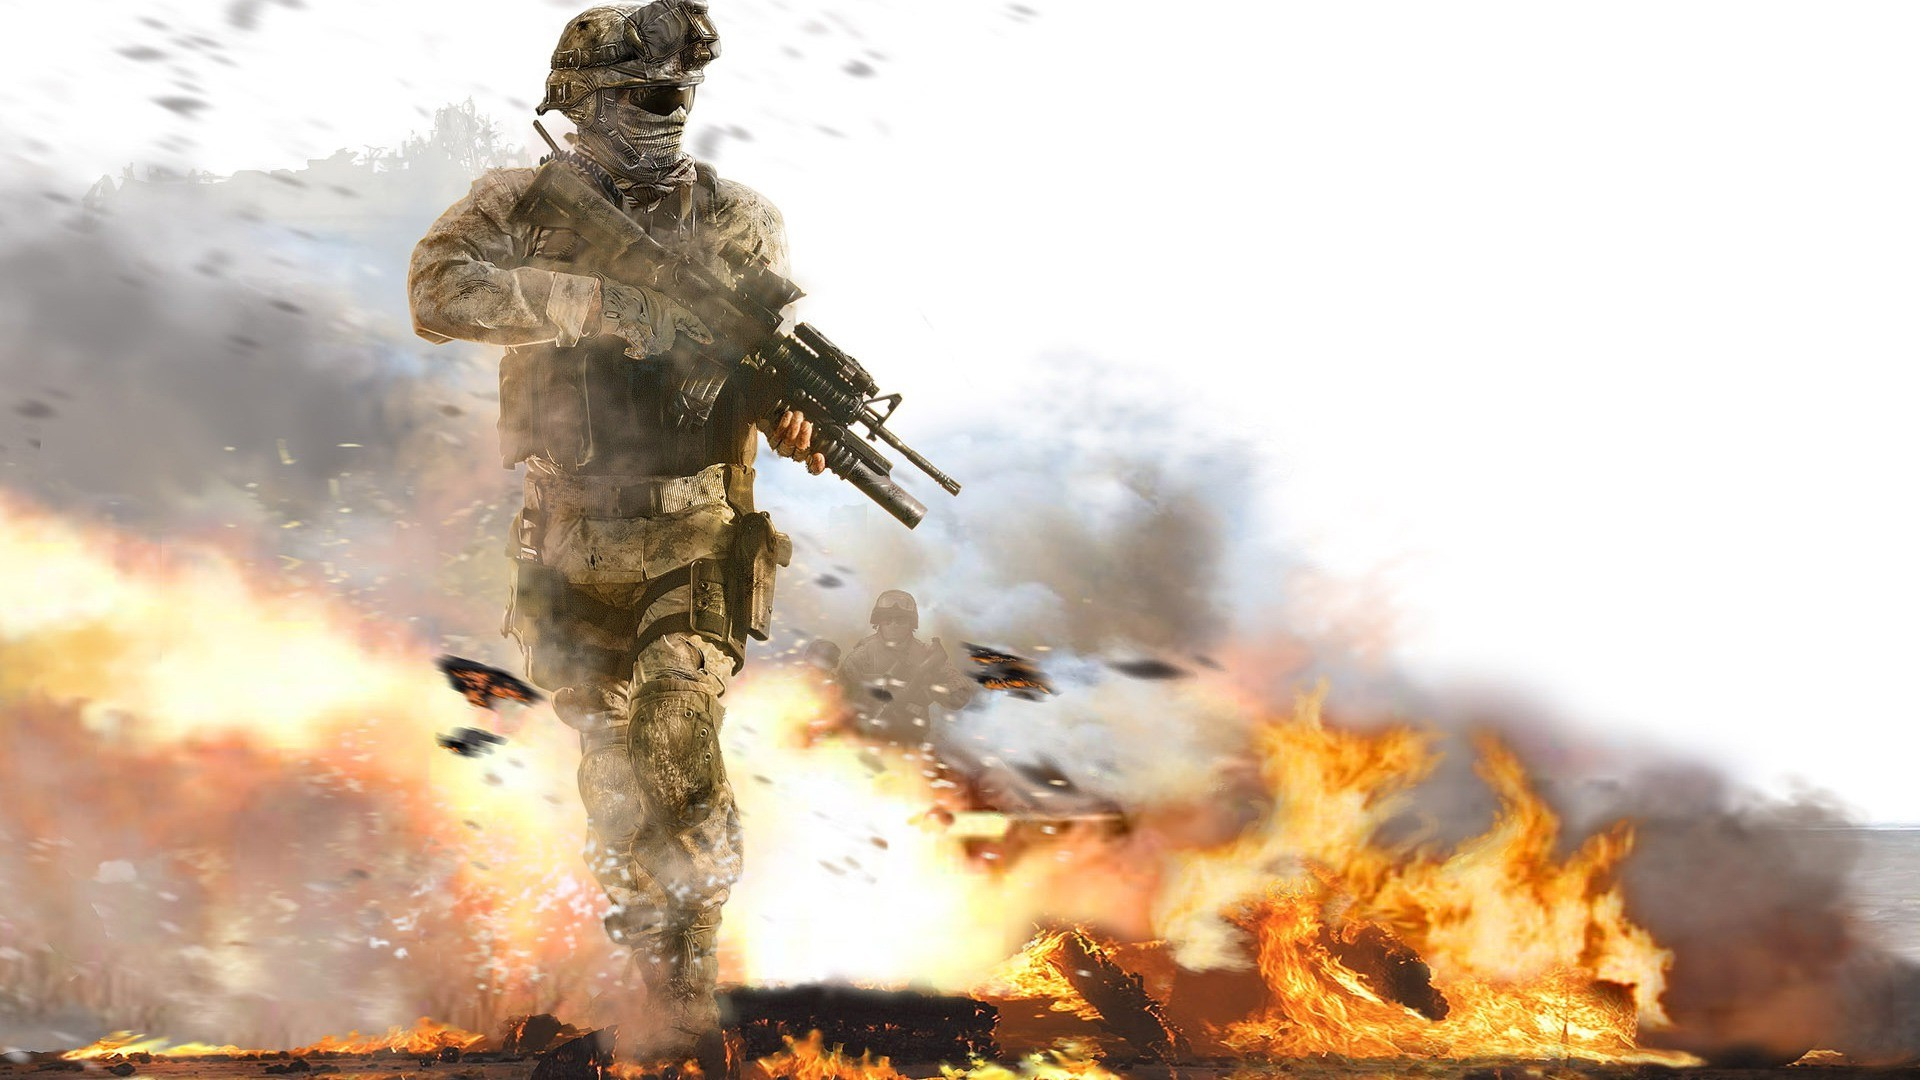 10 Latest Marine Corps Wallpaper Hd Full Hd 1080p For Pc: Call Of Duty Wallpapers High Quality